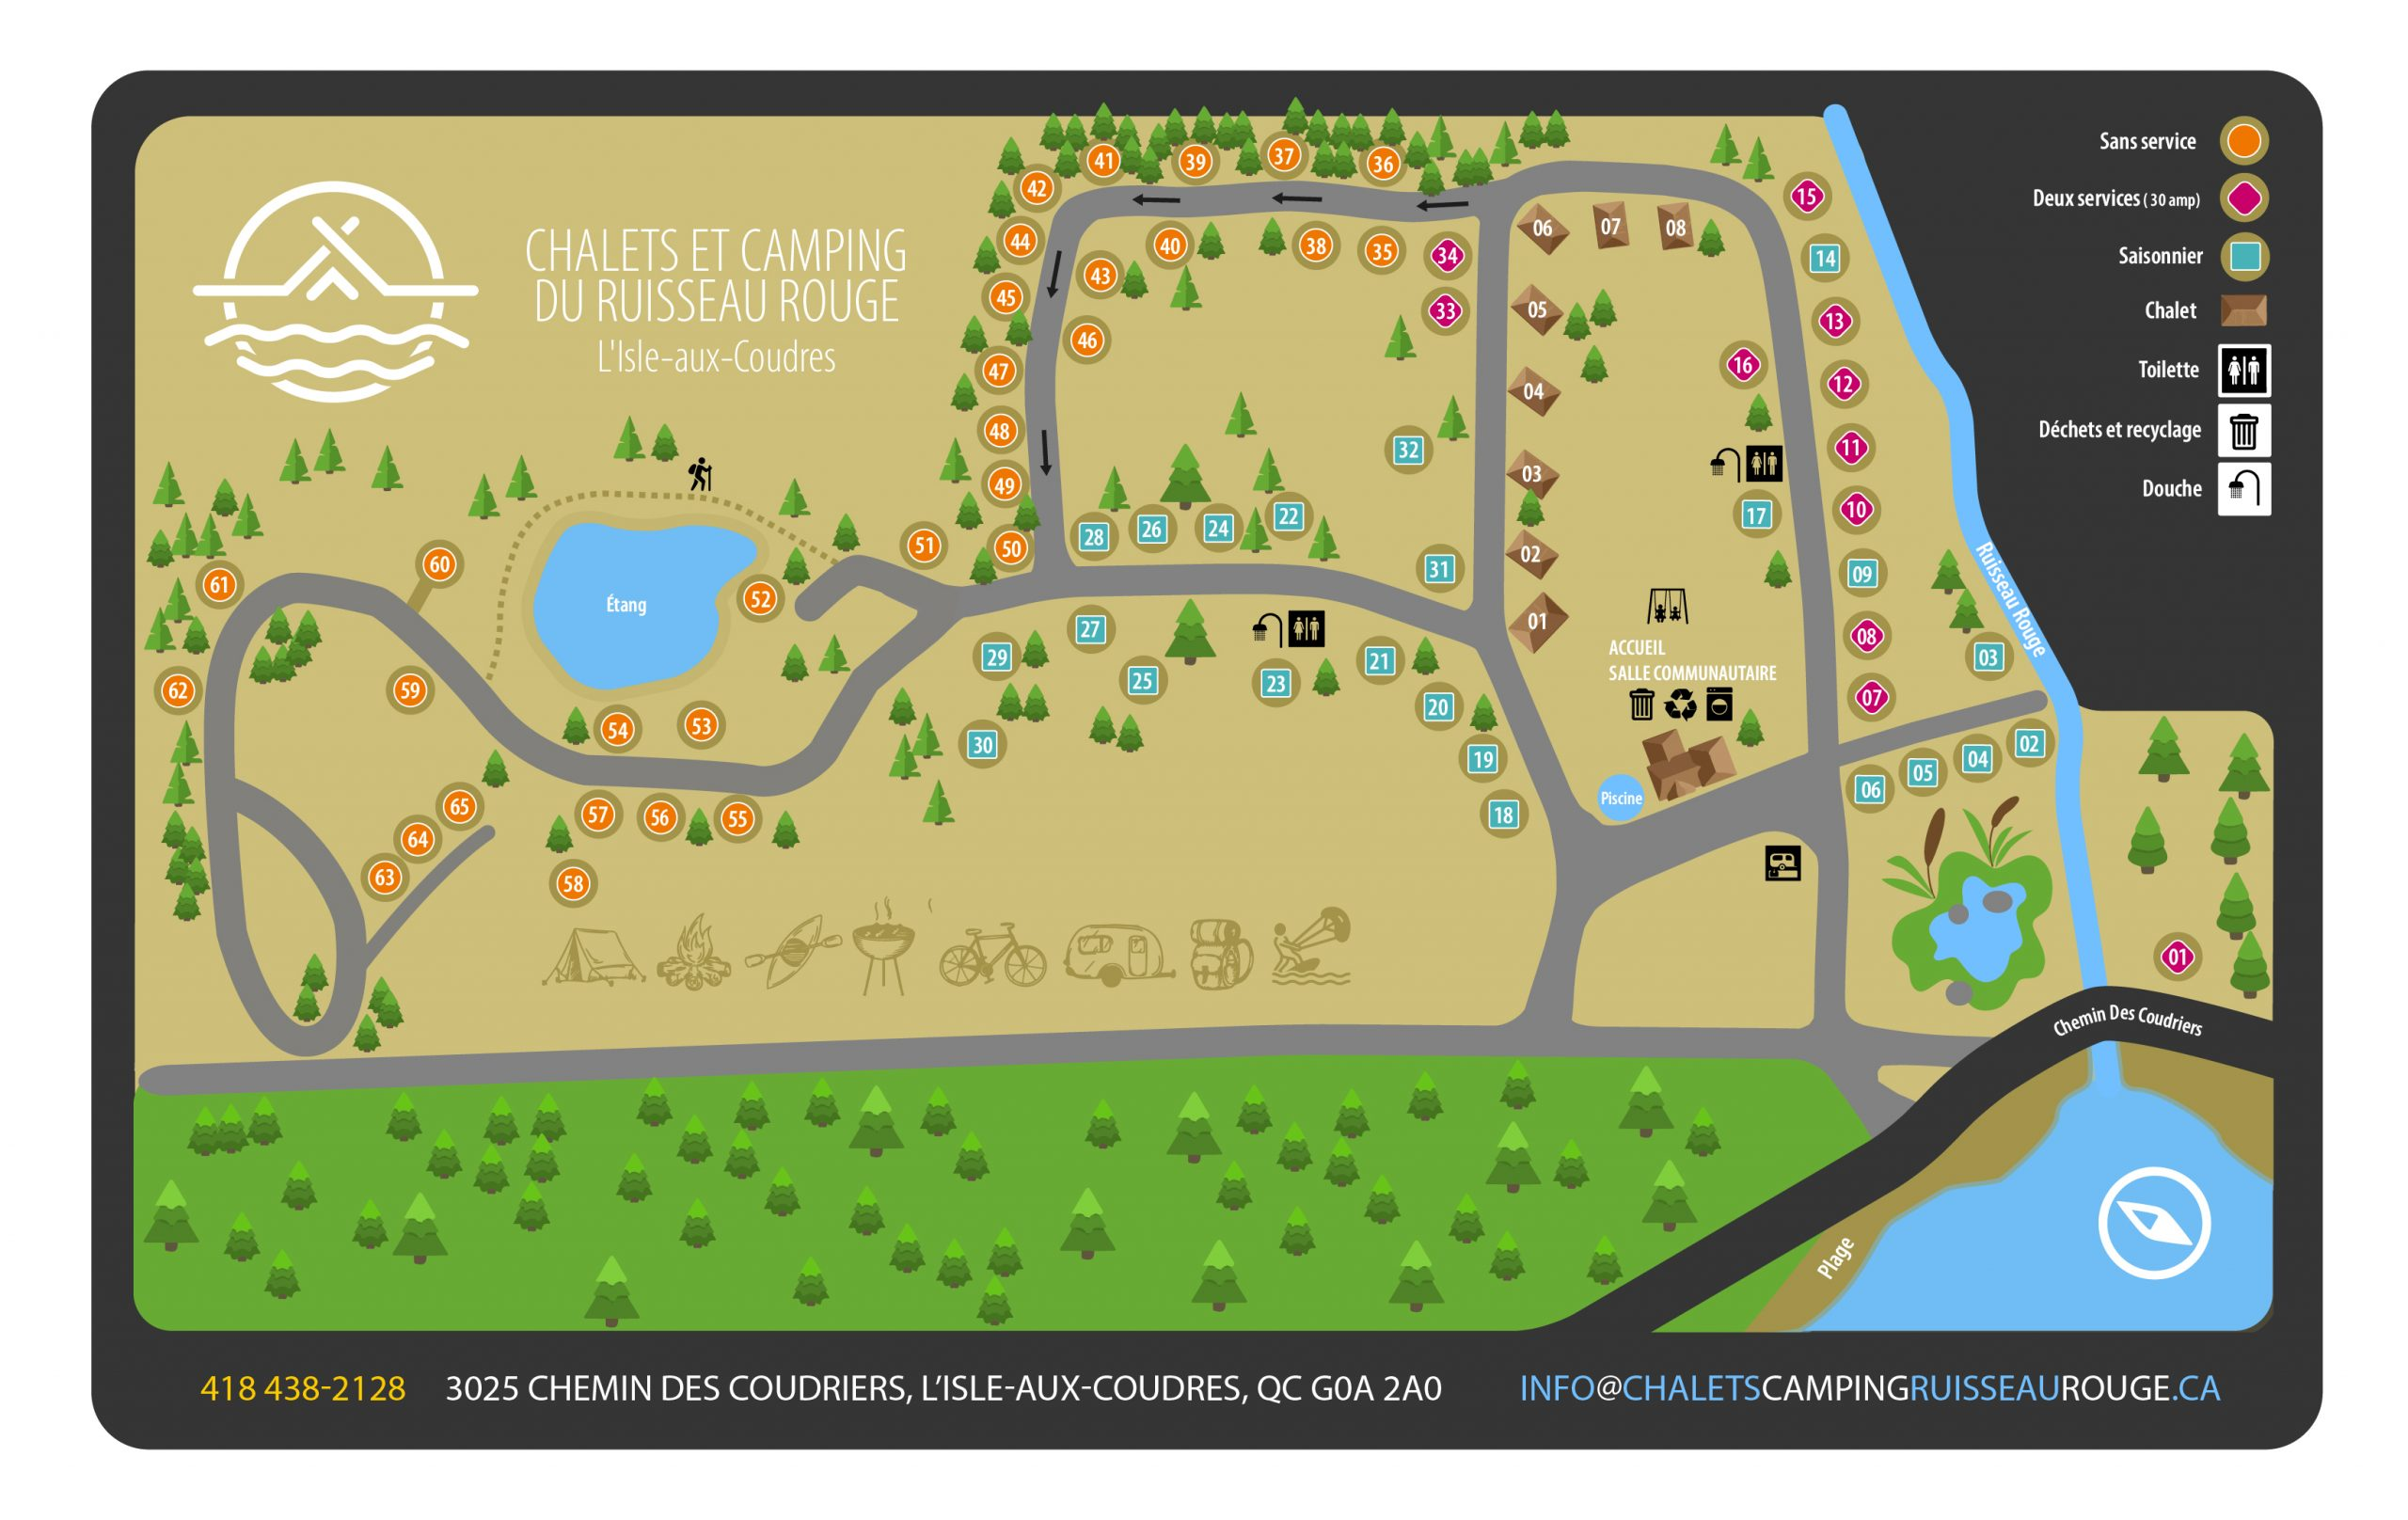 carte chalets camping ruisseau rouge isle-aux-coudres charlevoix